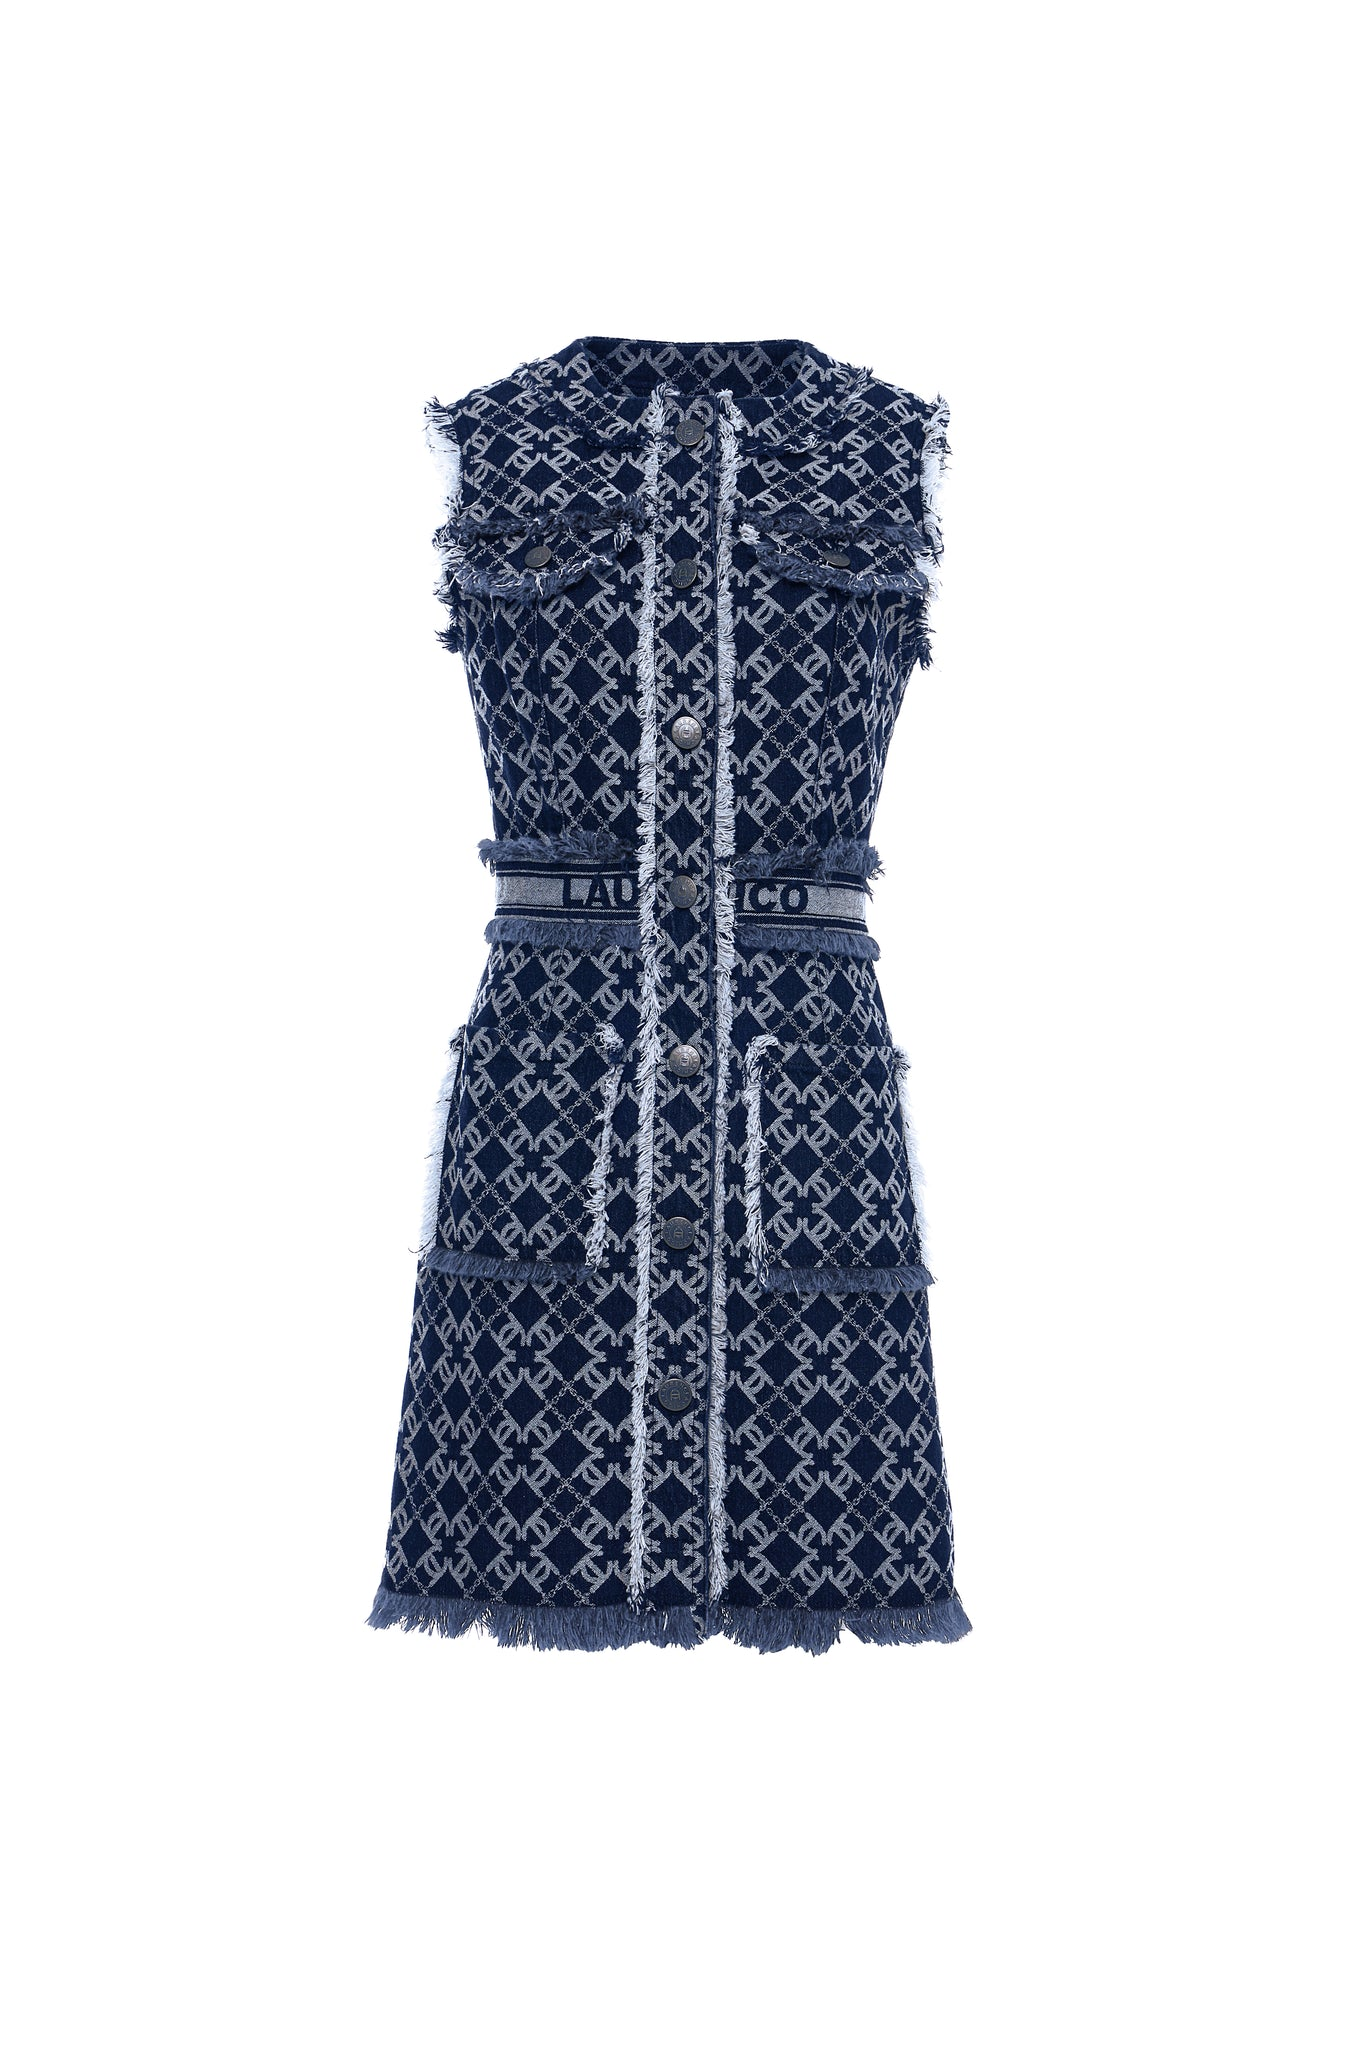 LC Logo Denim Jacquard Sleeveless Vest Dress, Navy